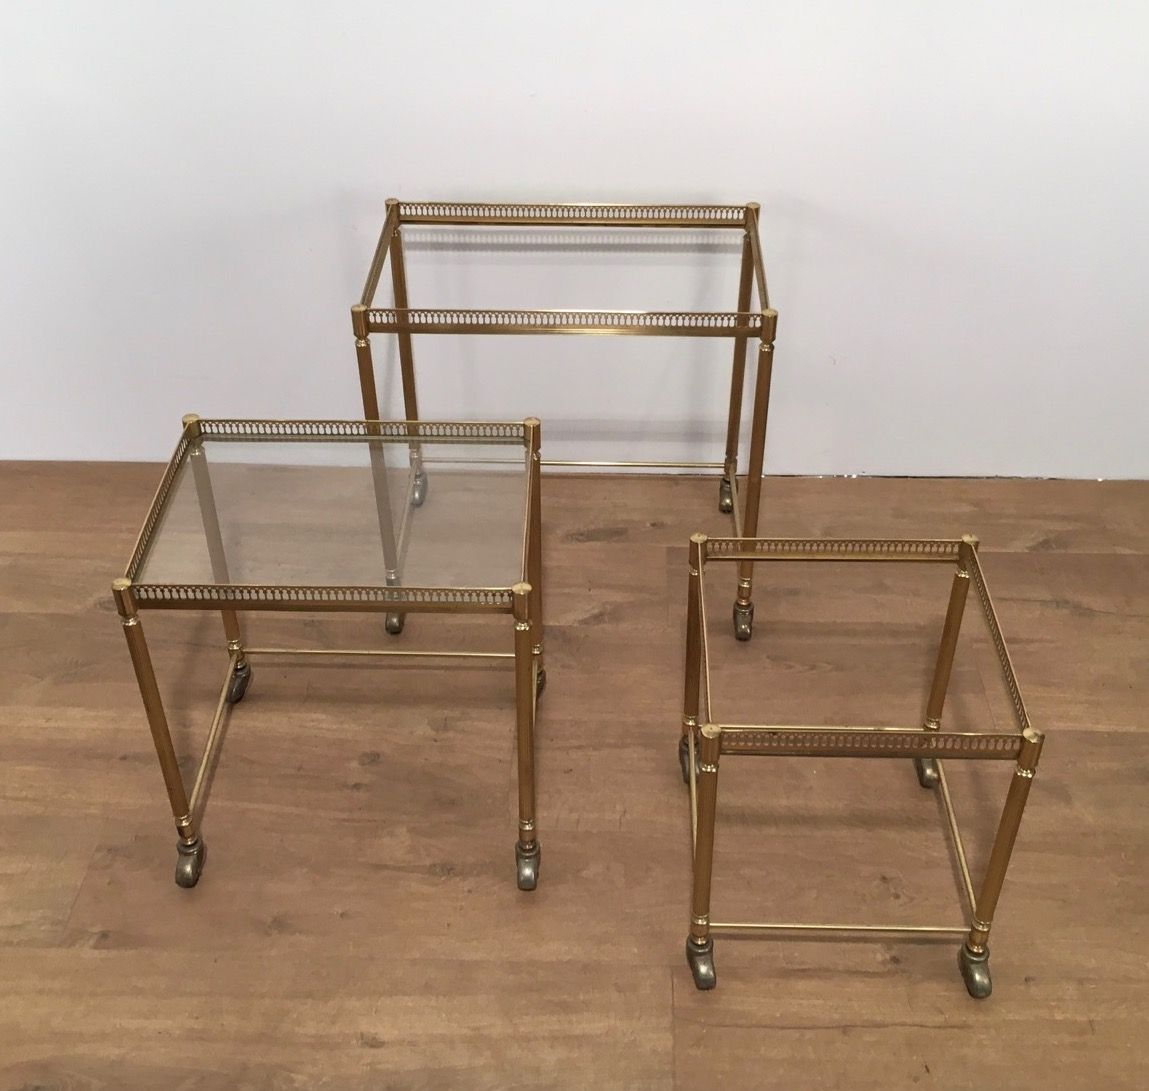 Amazing photo of Gilded Nesting Tables on Wheels 1950s Set of 3 for sale at Pamono with #4A321B color and 1149x1091 pixels